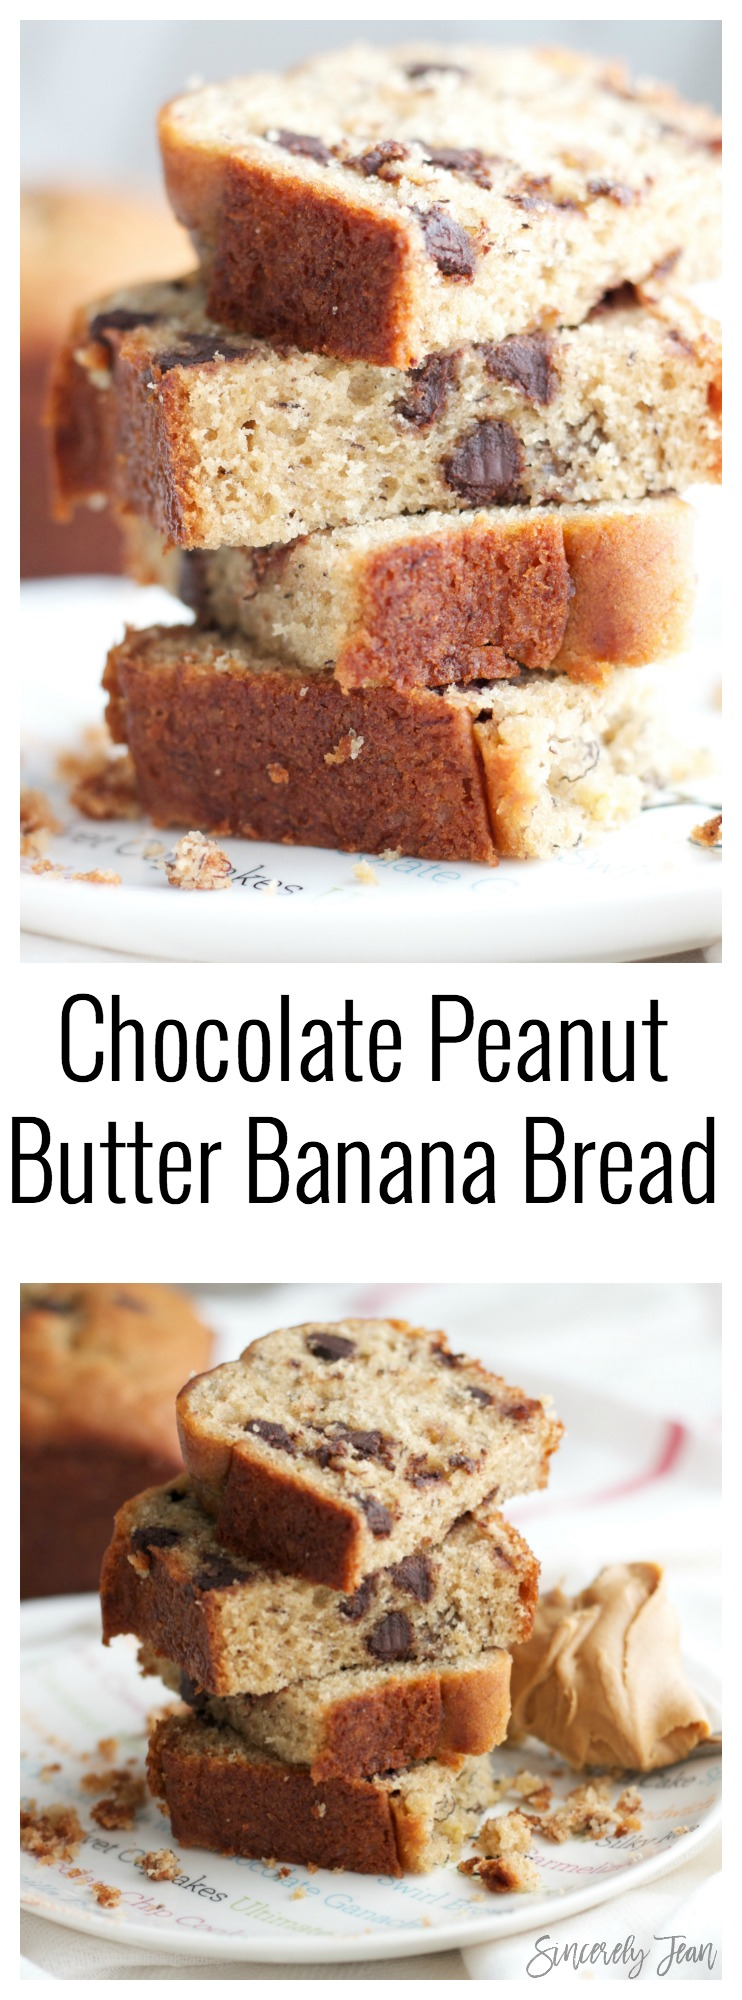 Chocolate Peanut Butter Banana Bread - Sincerely Jean